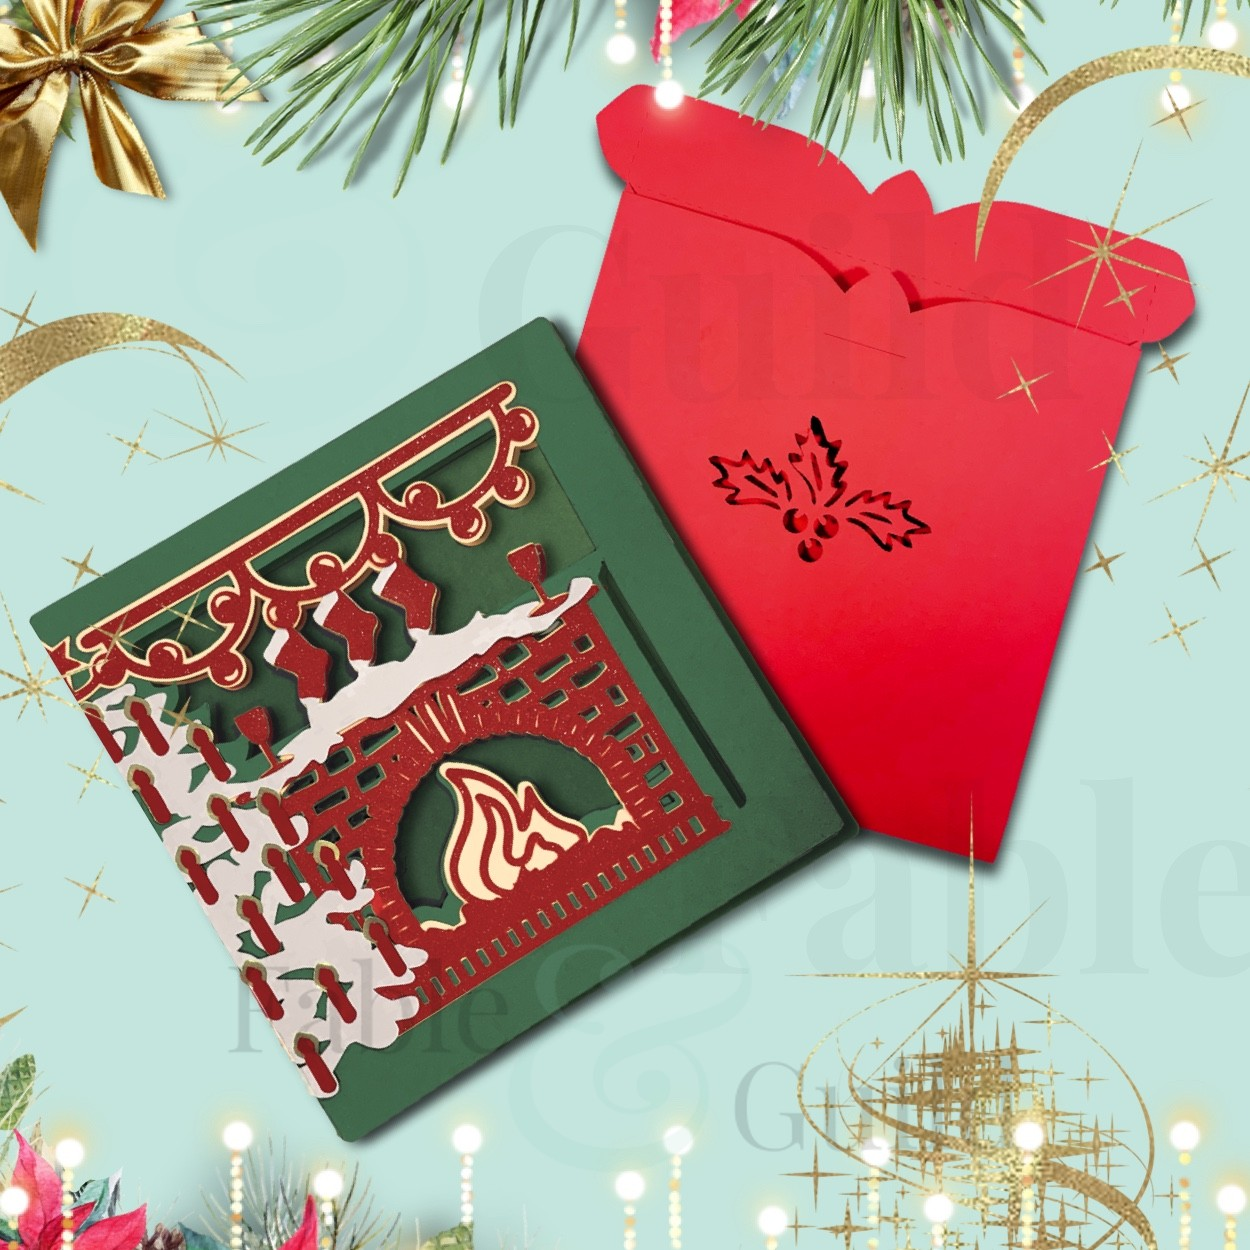 3d svg files for gift card holders, gift boxes, cards, rolled roses, and more 3d svg files! Festive 3d Christmas Card Svg Cut File Fable Guild